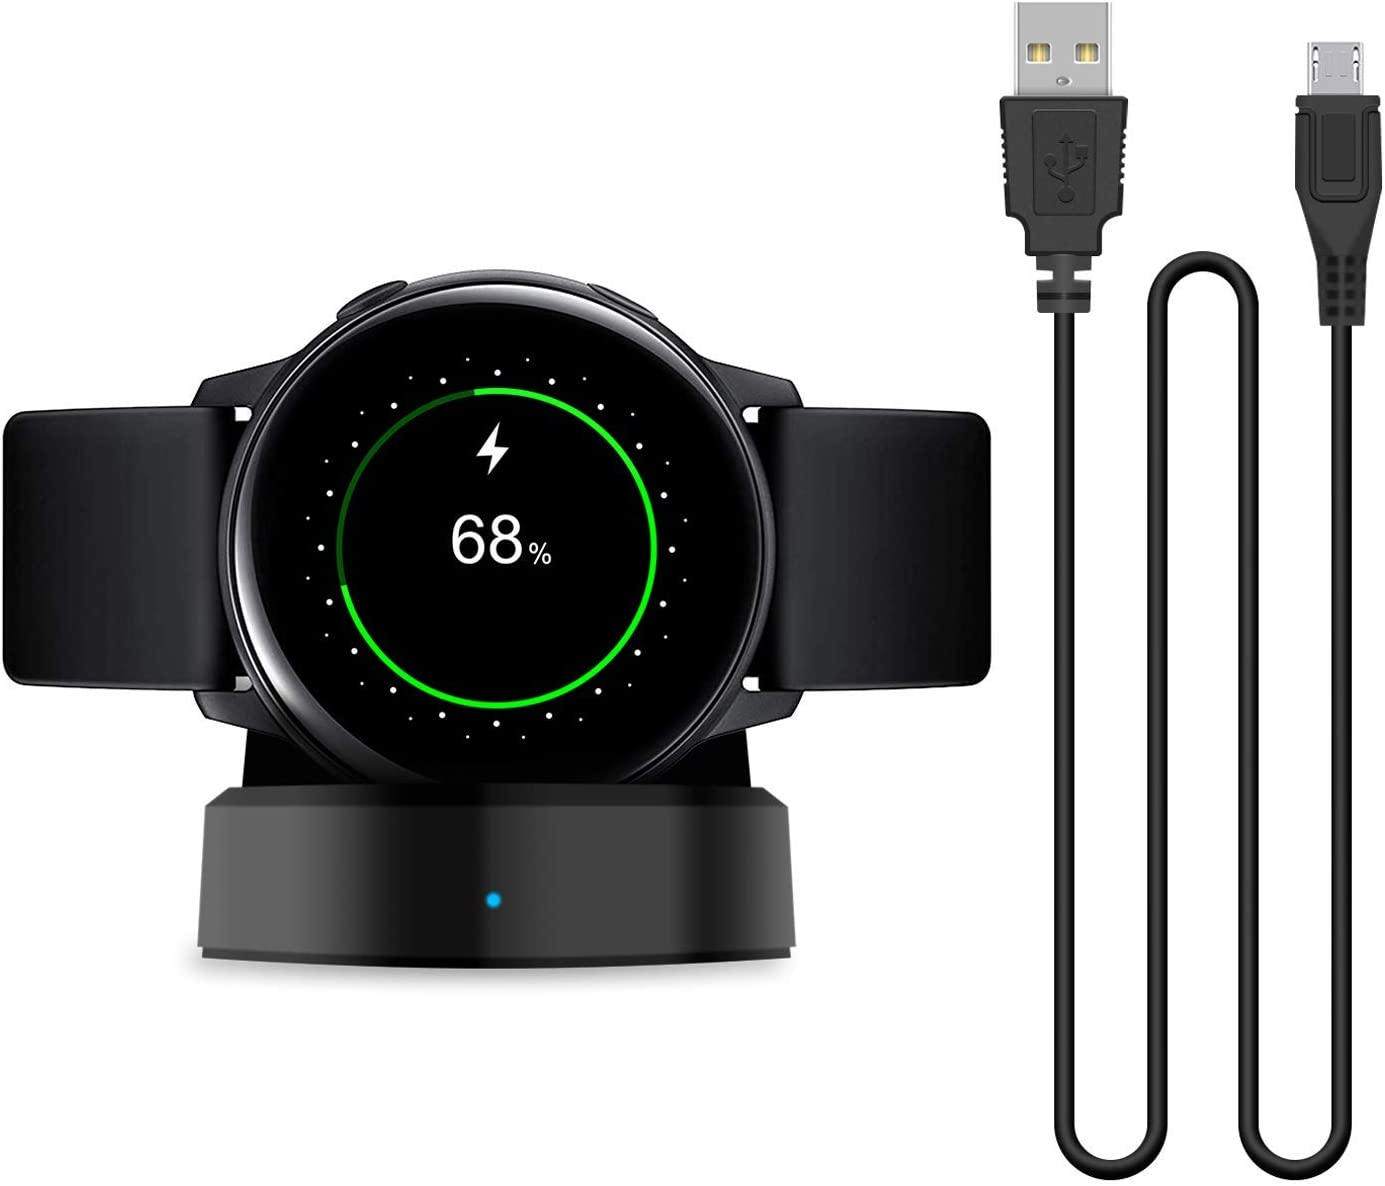 Elecxlink Charger Dock Compatible with Samsung Galaxy Smart Watch Active 2019, Replacement Charging Dock Cradle for Samsung Galaxy Smart Watch Active ...